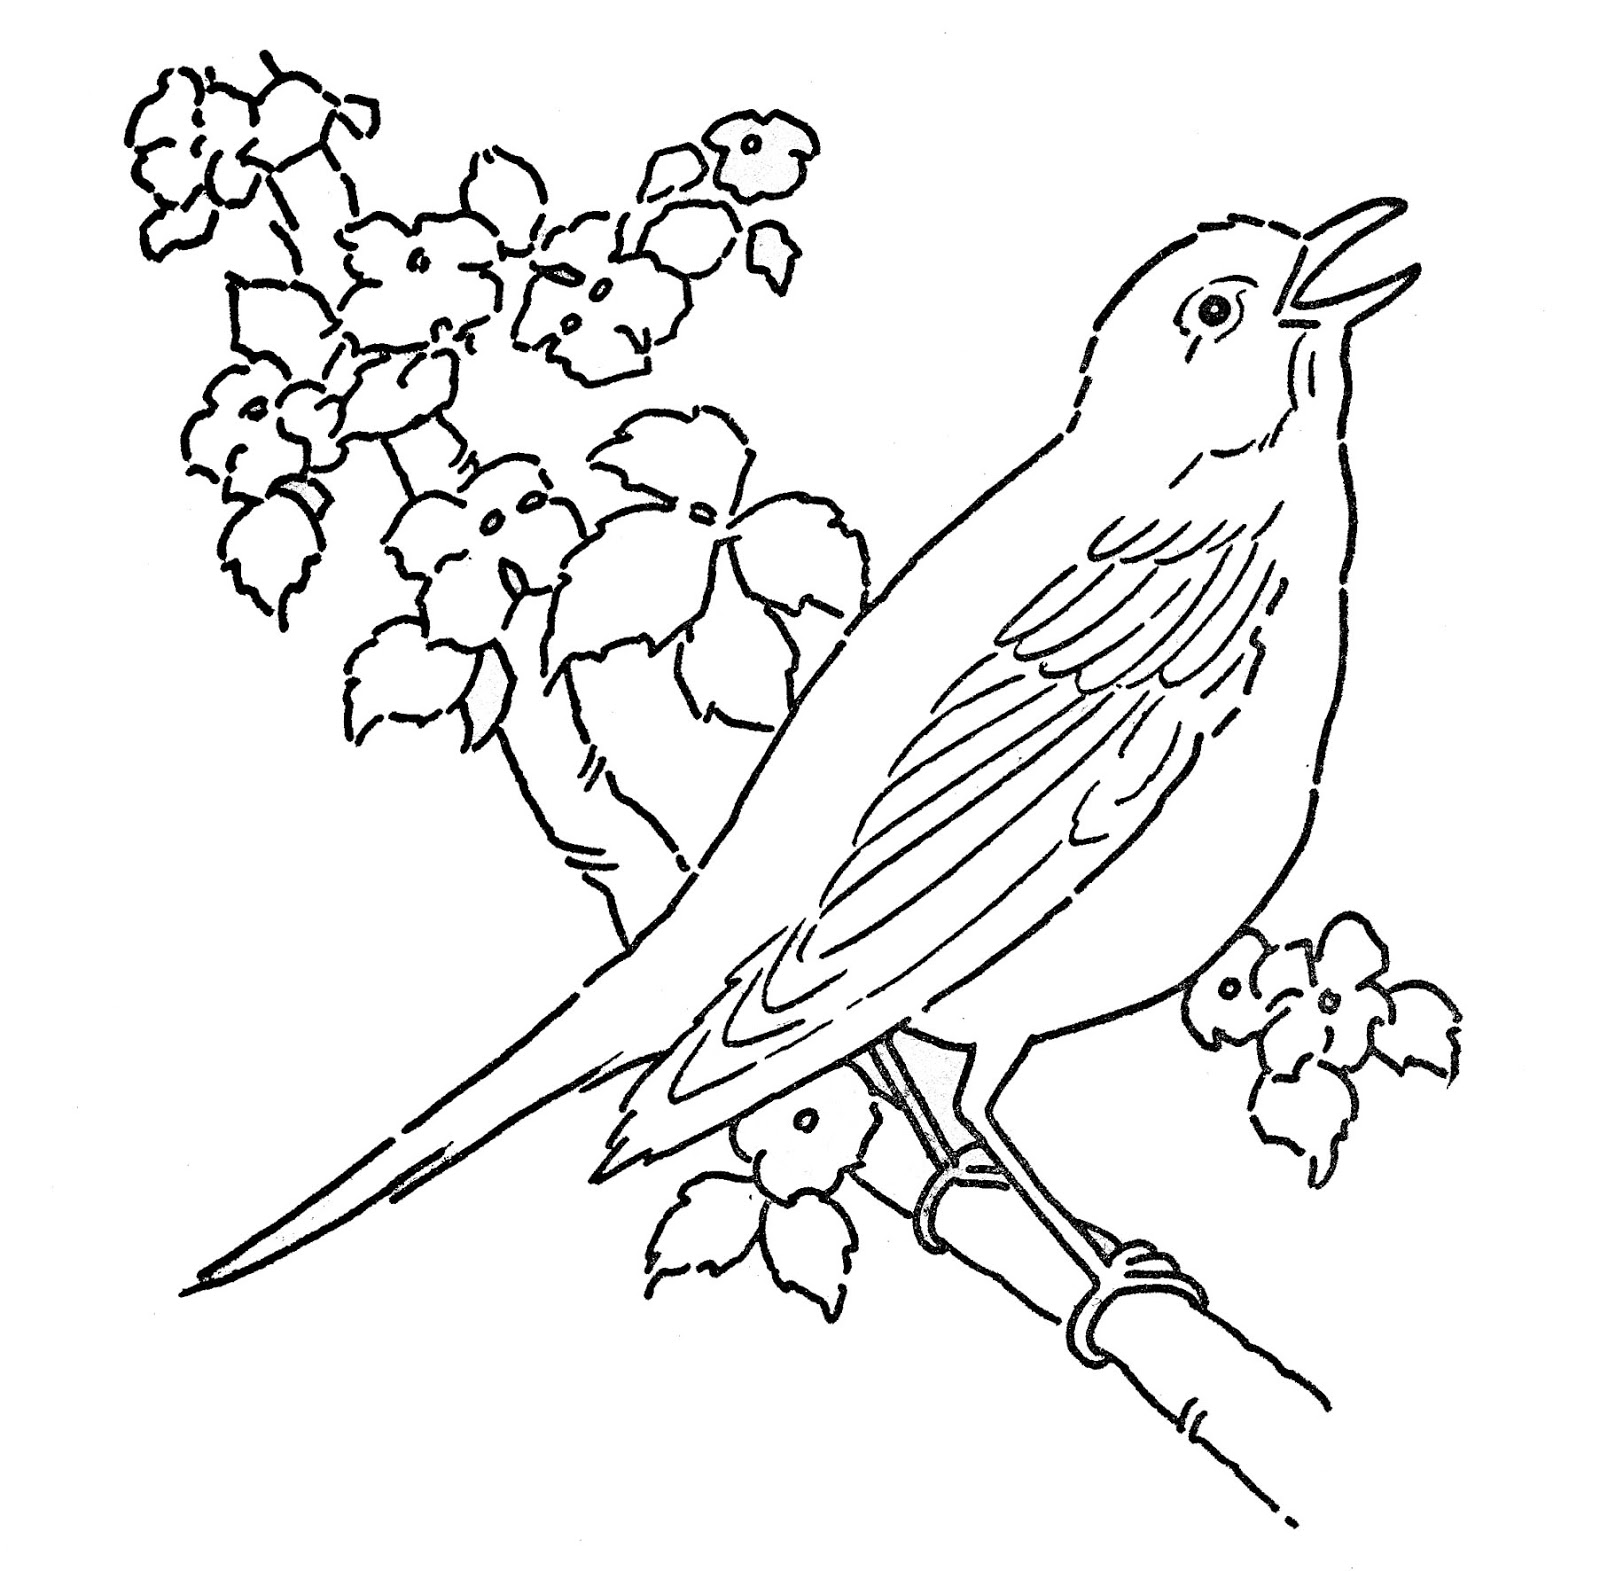 listellos line art coloring pages - photo#18